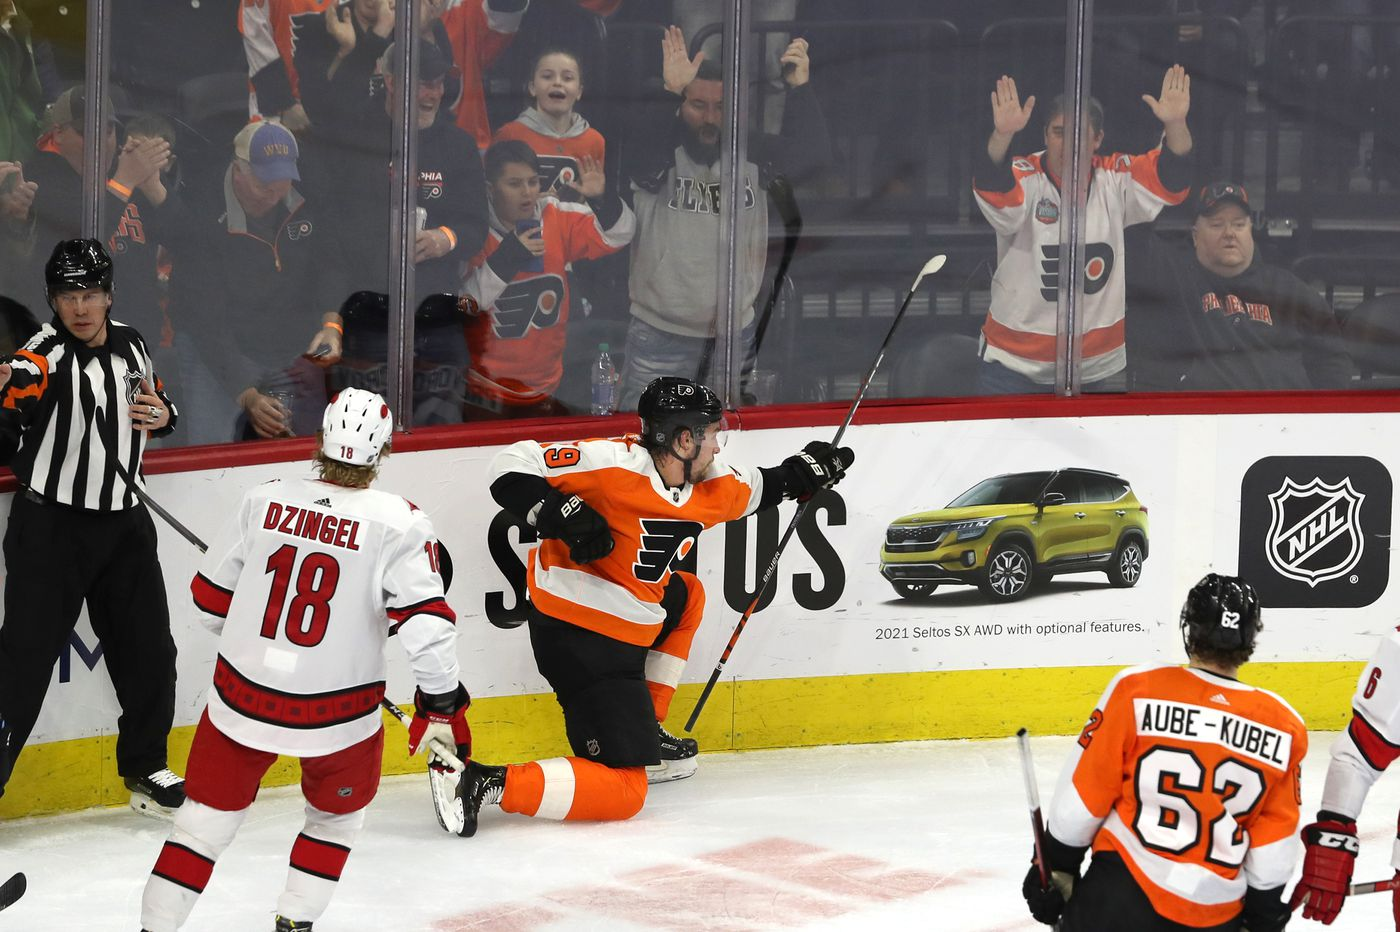 The Flyers' Ivan Provorov has another big night in win over Hurricanes